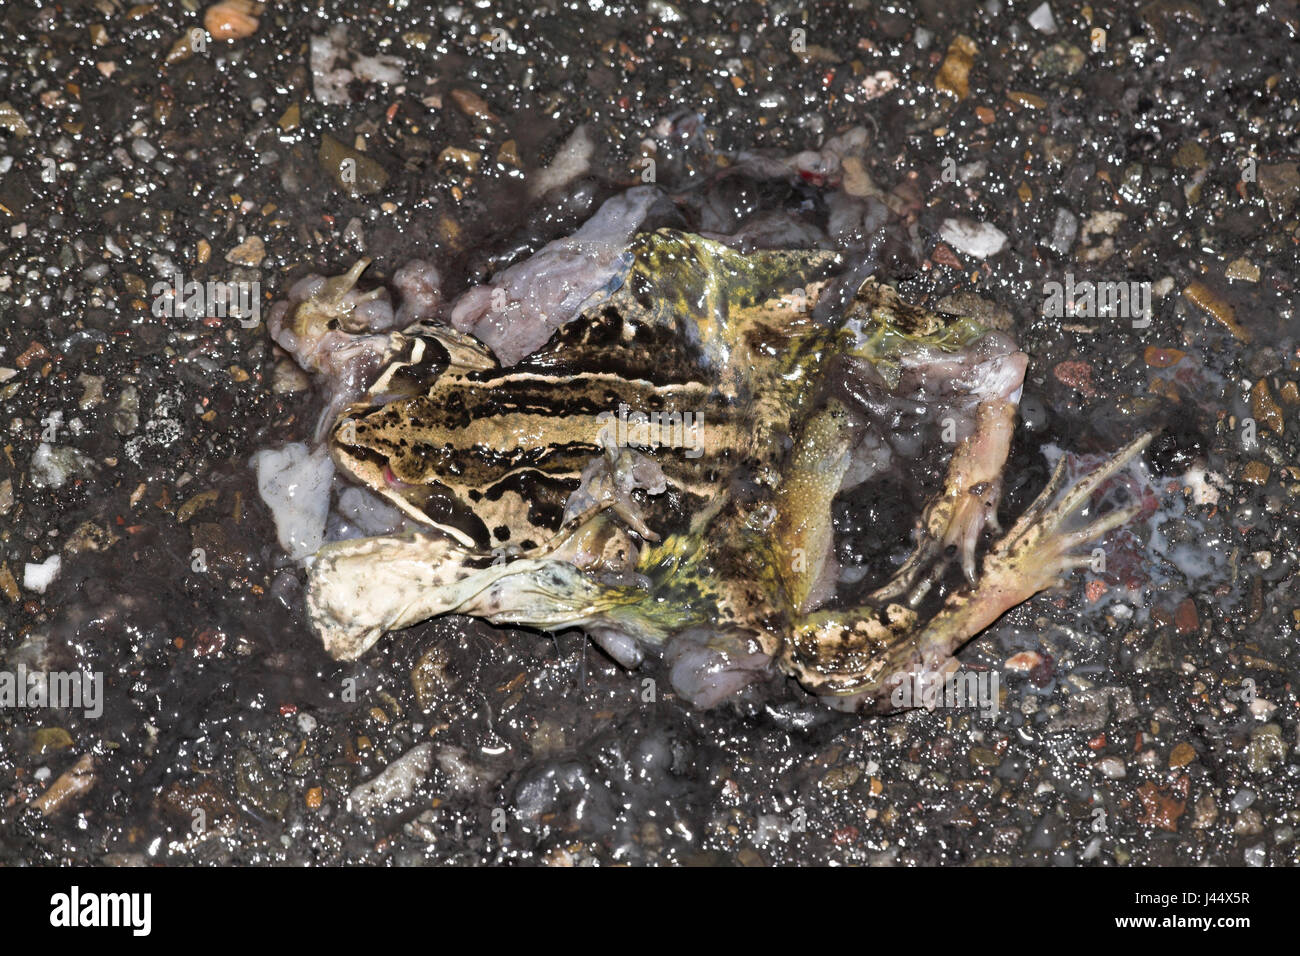 a moor frog is killed by the traffic on a dike - Stock Image